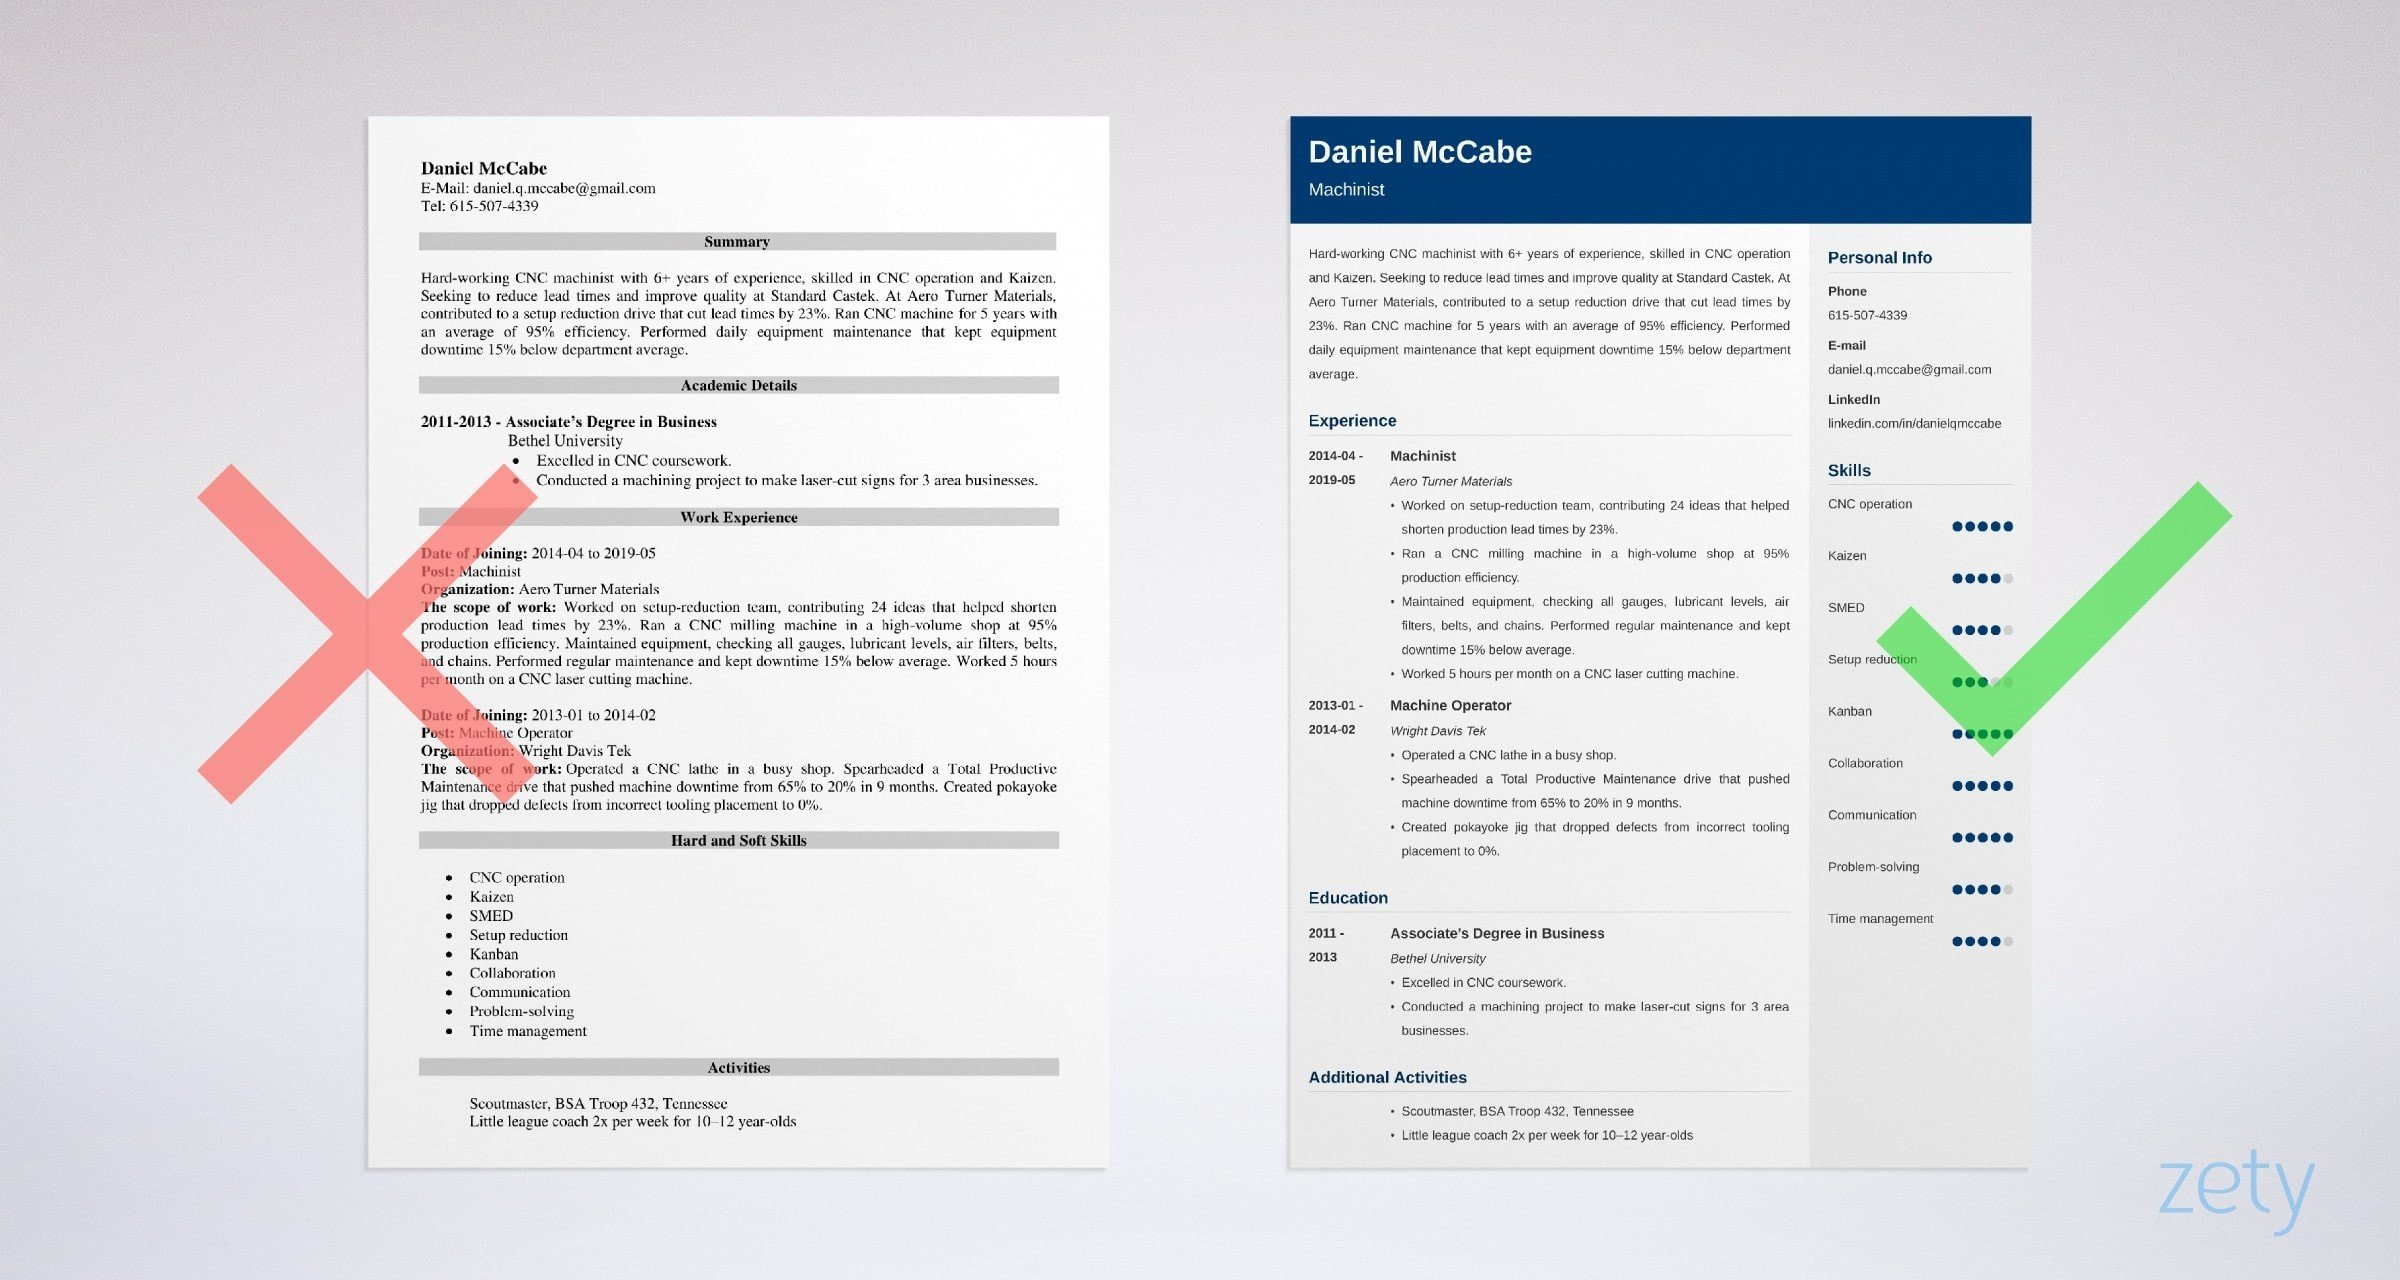 cnc machinist resume samples for machine operators tips template example tour guide Resume Cnc Machinist Resume Template